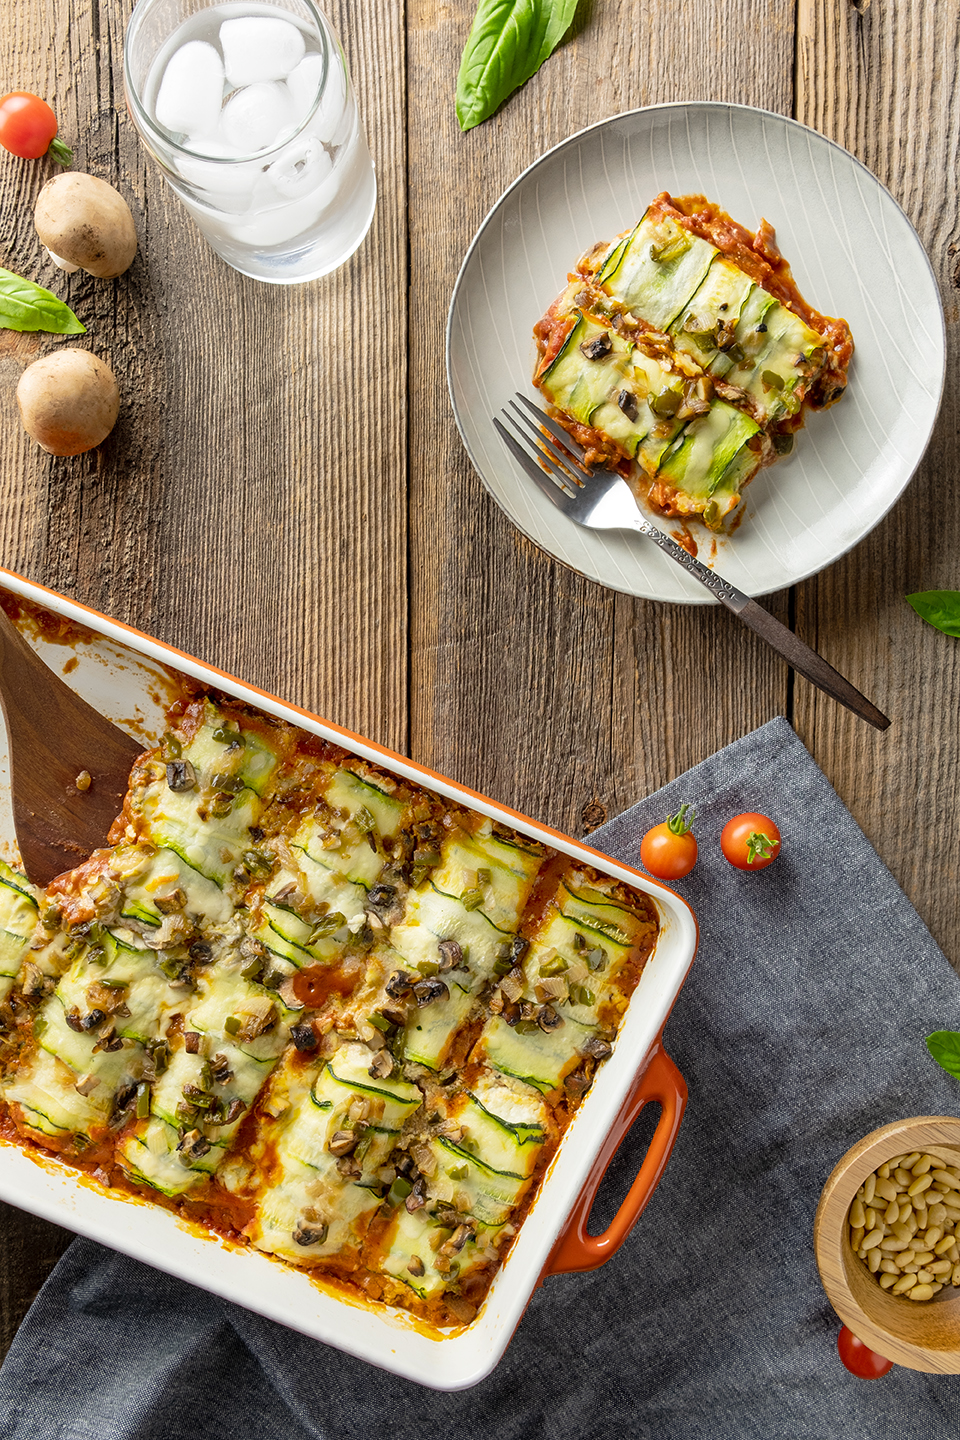 JodiLoves_Low-Carb Zucchini-Ricotta-Cannelloni_plated.jpg